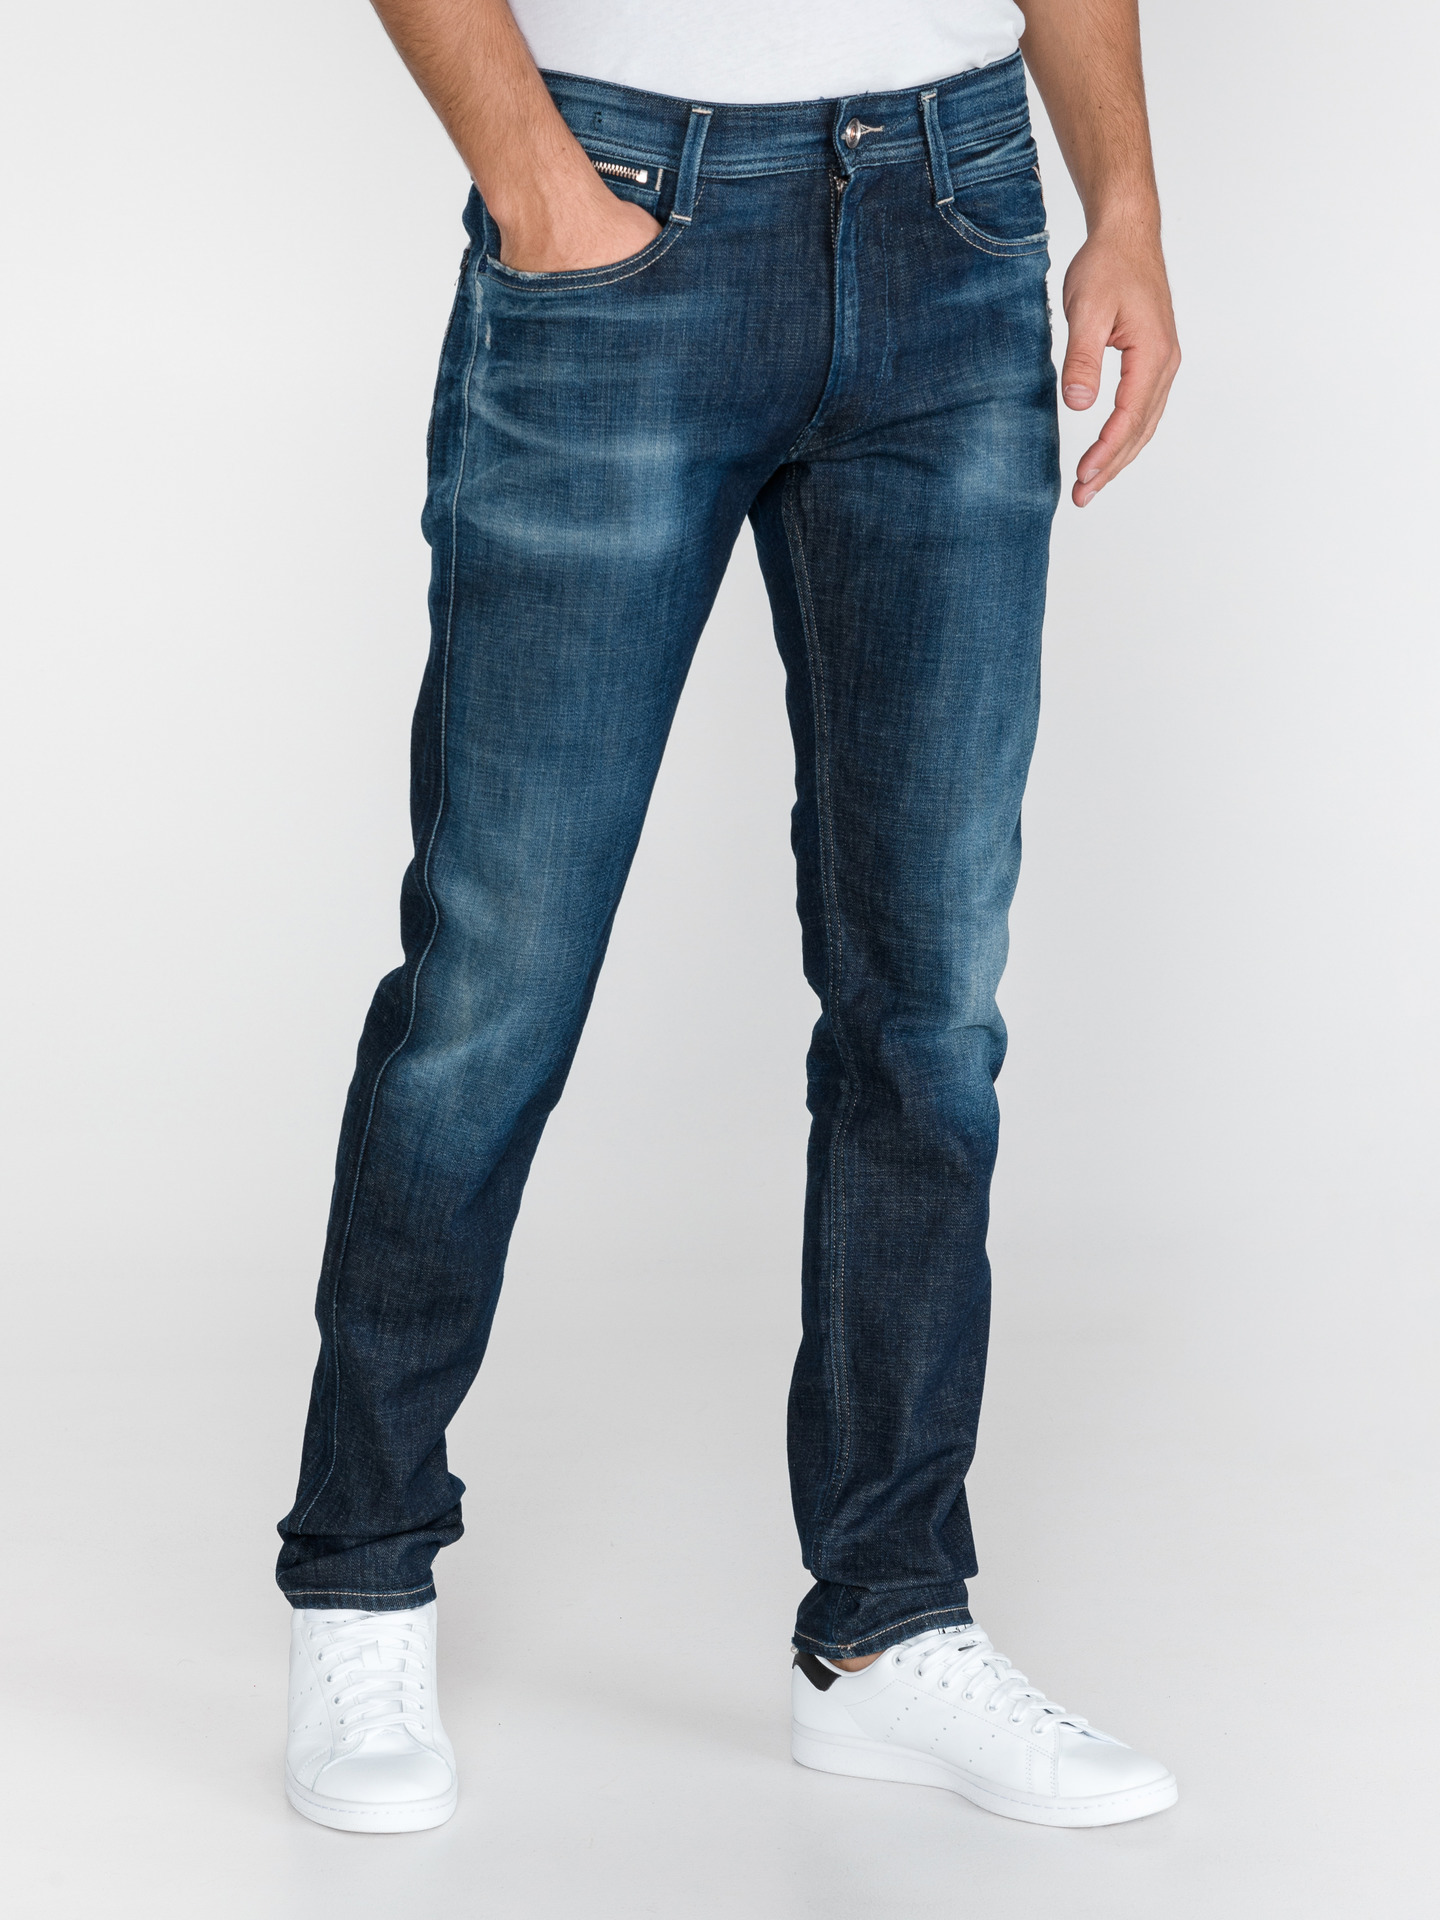 Anbass Ice Blast Jeans Replay (1)